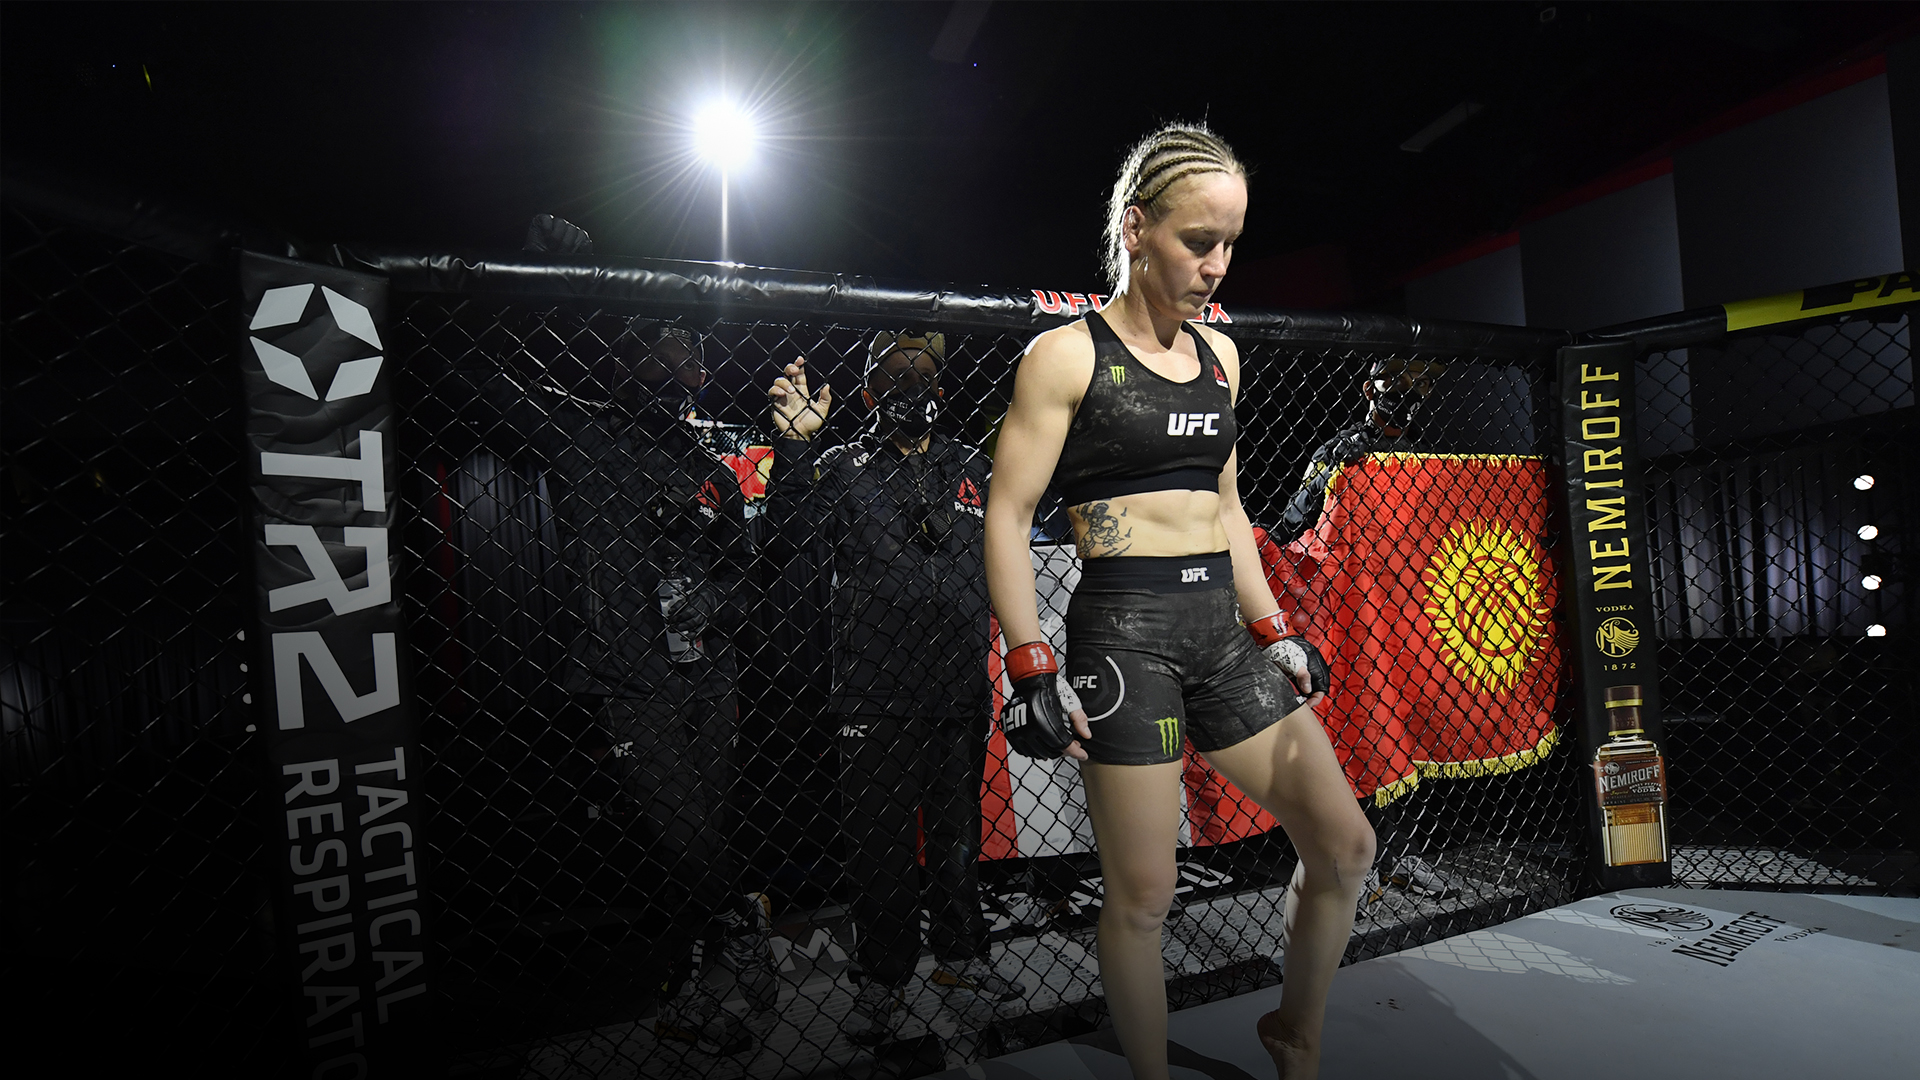 Valentina Shevchenko of Kyrgyzstan stands in her corner prior to her women's flyweight championship bout against Jennifer Maia of Brazil during the UFC 255 event at UFC APEX on November 21, 2020 in Las Vegas, Nevada. (Photo by Jeff Bottari/Zuffa LLC)